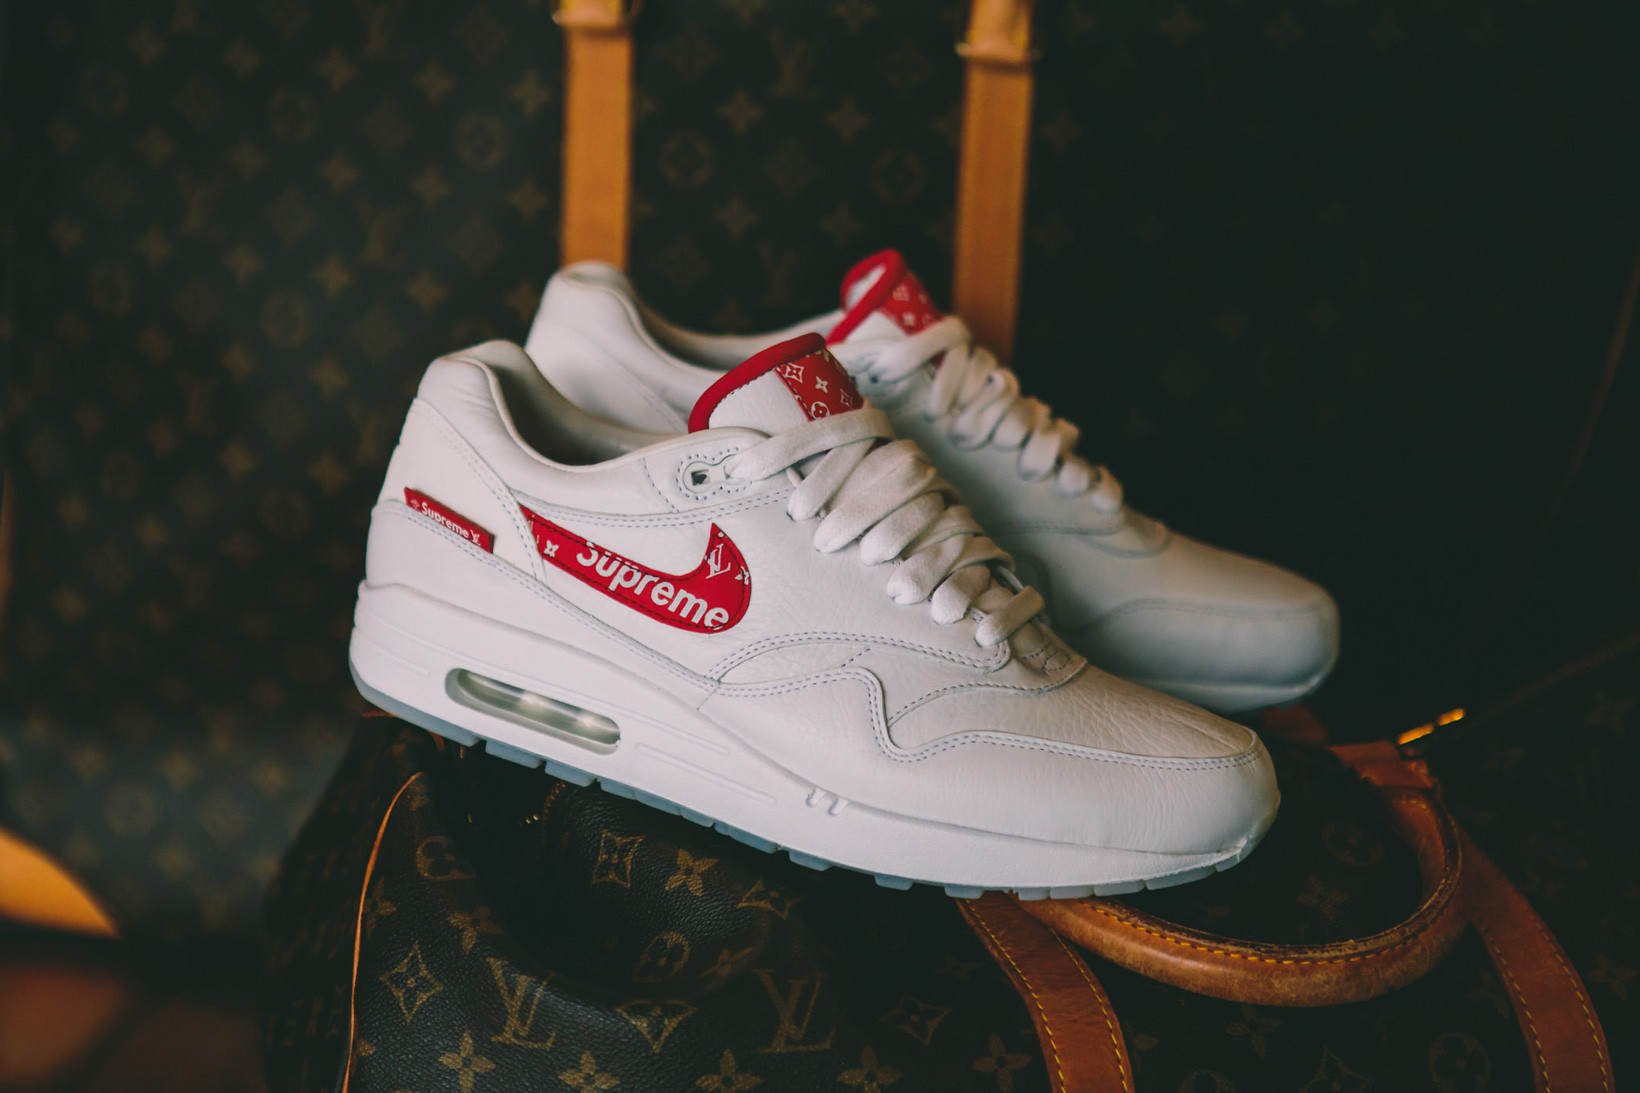 Supreme Louis Vuitton Nike Air Max 1 Custom BespokeIND Sneakers Footwear  Shoes Collaboration 2017 Box Logo